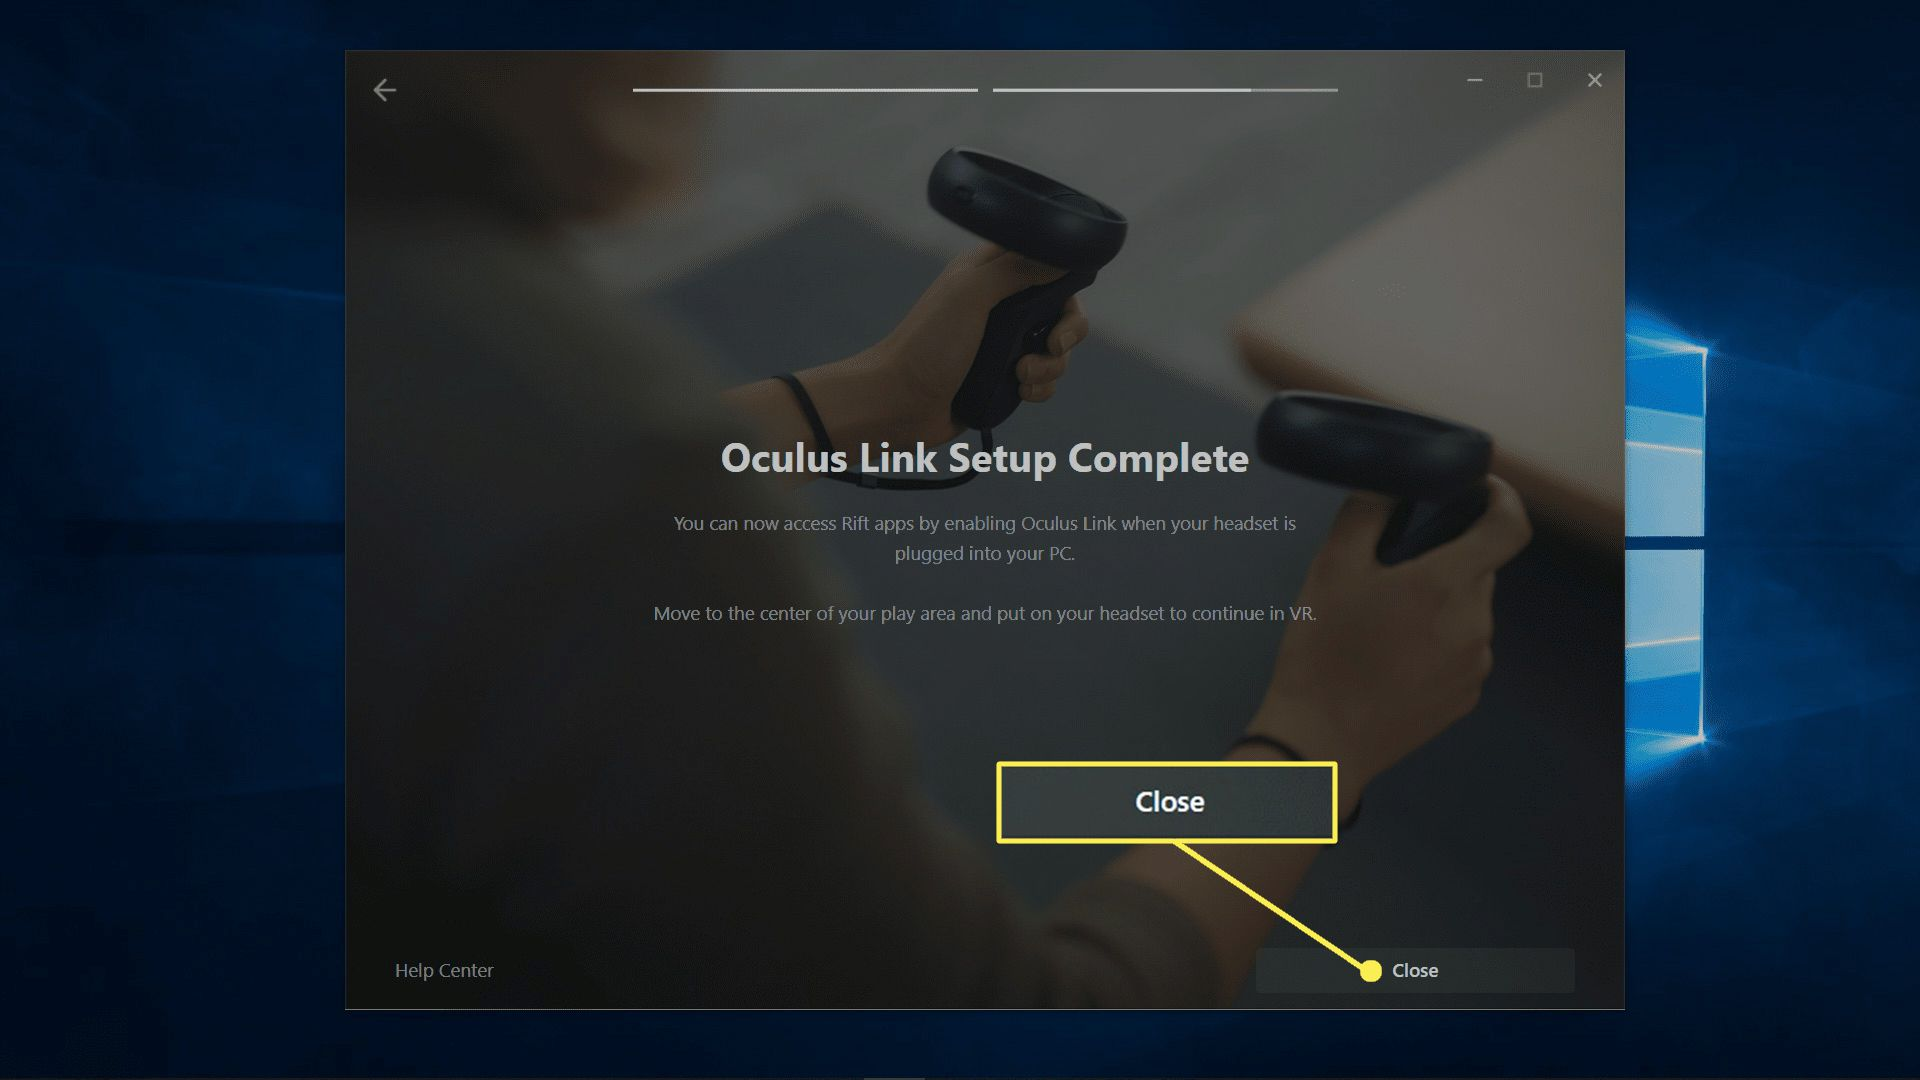 Close highlighted on the oculus link setup complete screen.